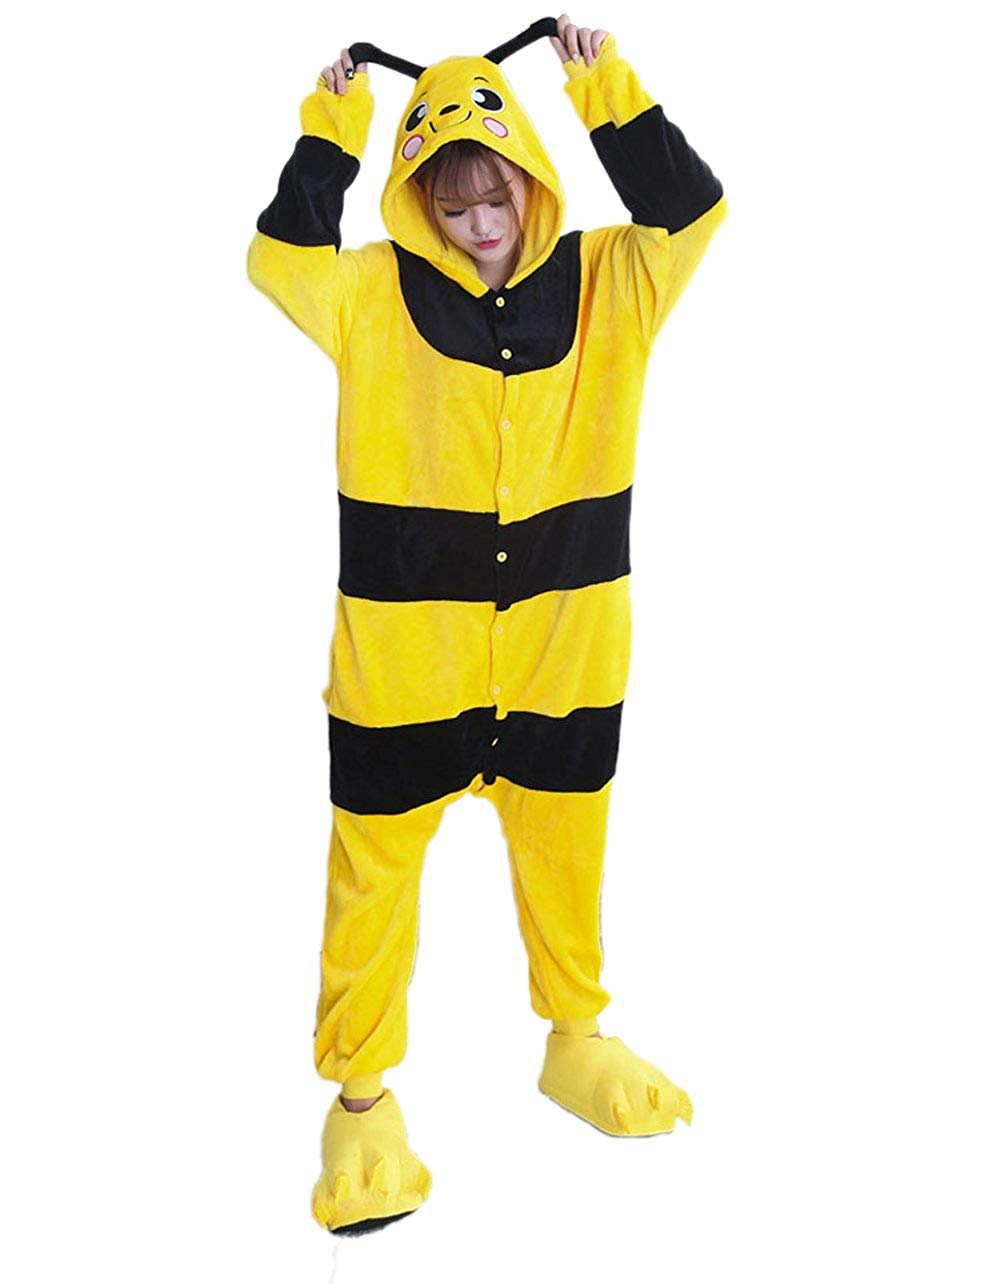 2be25e9acb94 Get Quotations · Vimans Onesie Pajamas Adult for Unisex Pajamas Yellow Bee  One Piece